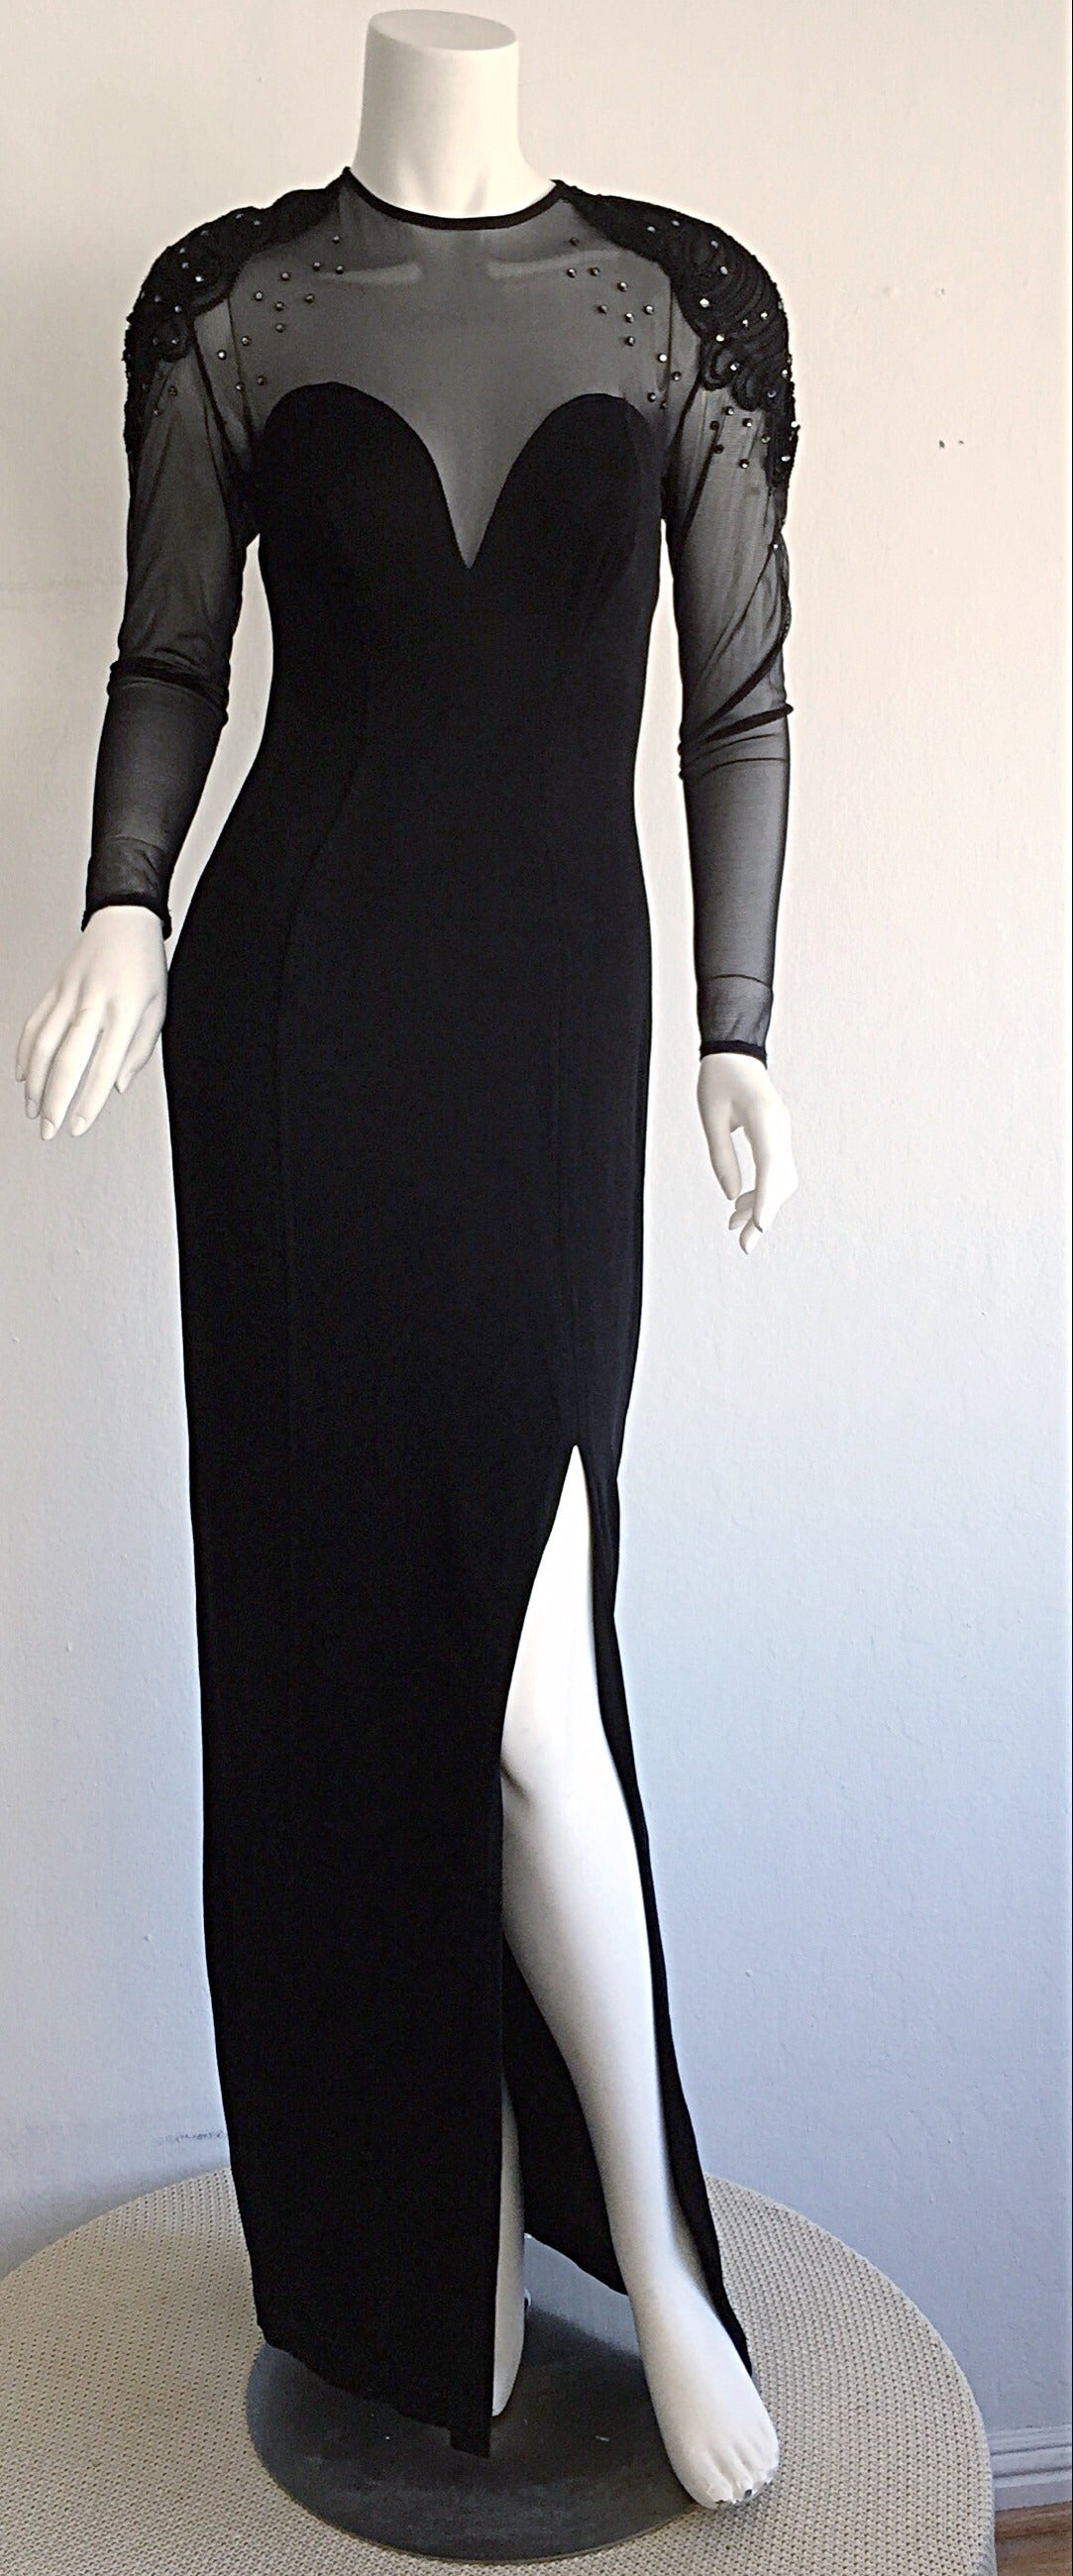 Sexy Vintage 1990s Black Cut - Out Bodycon Dress w/ Rhinestones For Sale 5